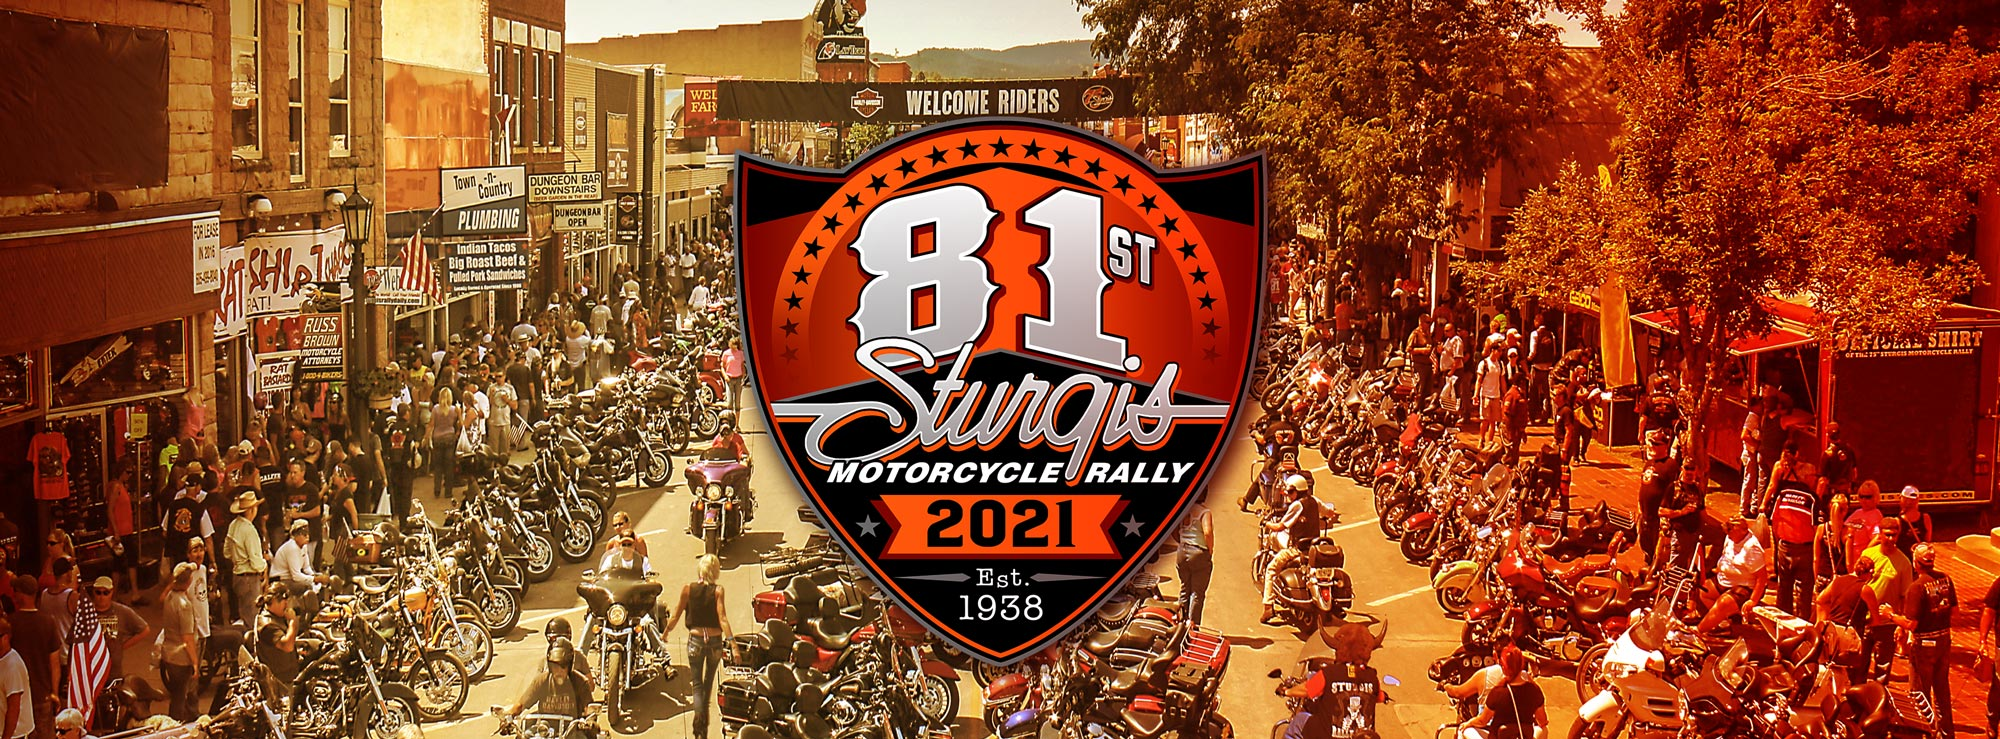 Sturgis motorcycle rally shirts, patches, hats and more